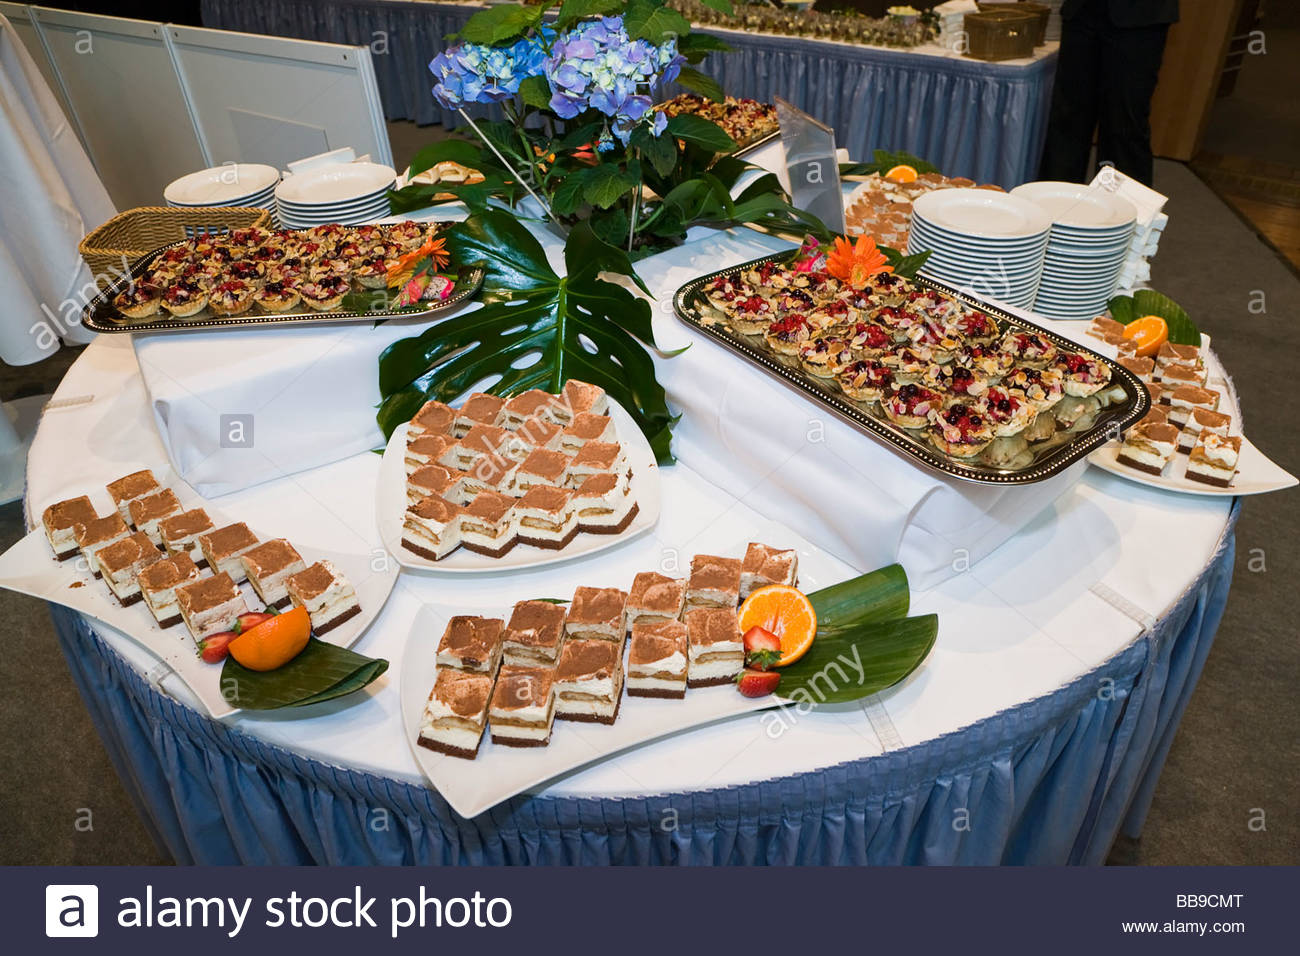 dessert buffet table food tiramisu fruit cookies eating canape stock photo royalty free image. Black Bedroom Furniture Sets. Home Design Ideas